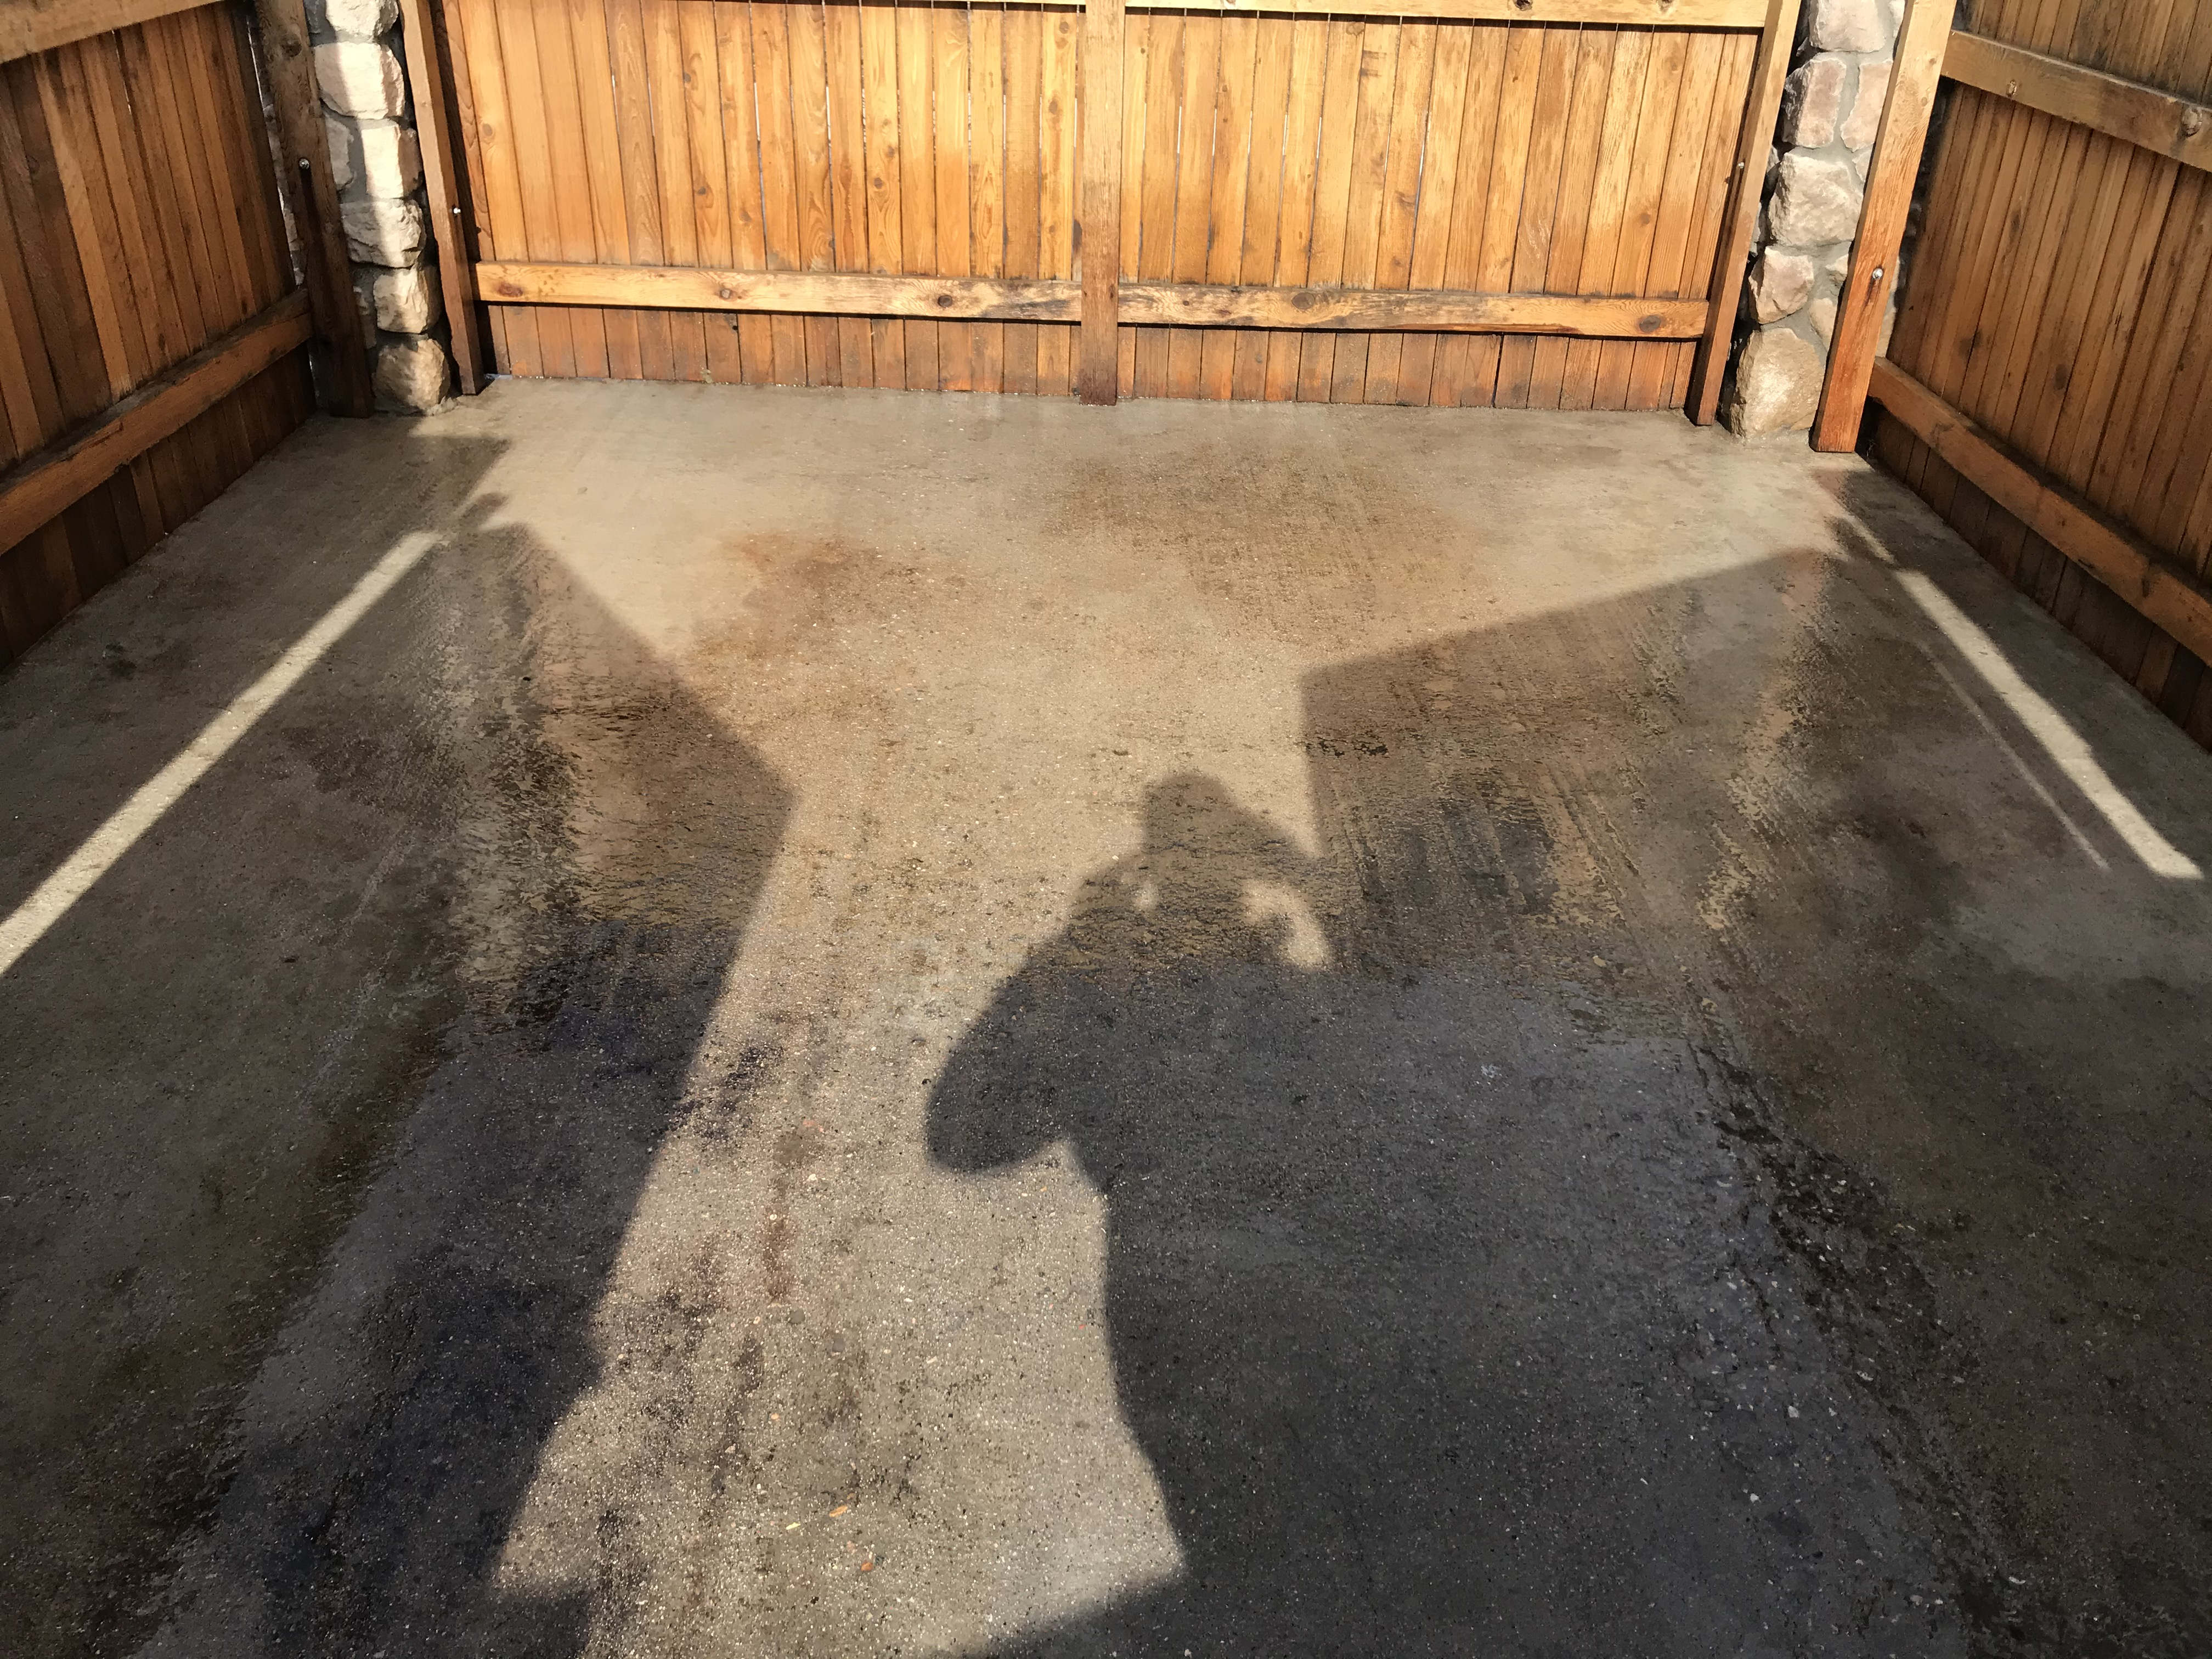 Commercial Pressure Washing & Dumpster Pad Cleaning Service Areas Include:  Fort Collins, Loveland, Windsor, Greeley, Berthoud,  Longmont, Estes Park, Wellington, Cheyenne Wyoming